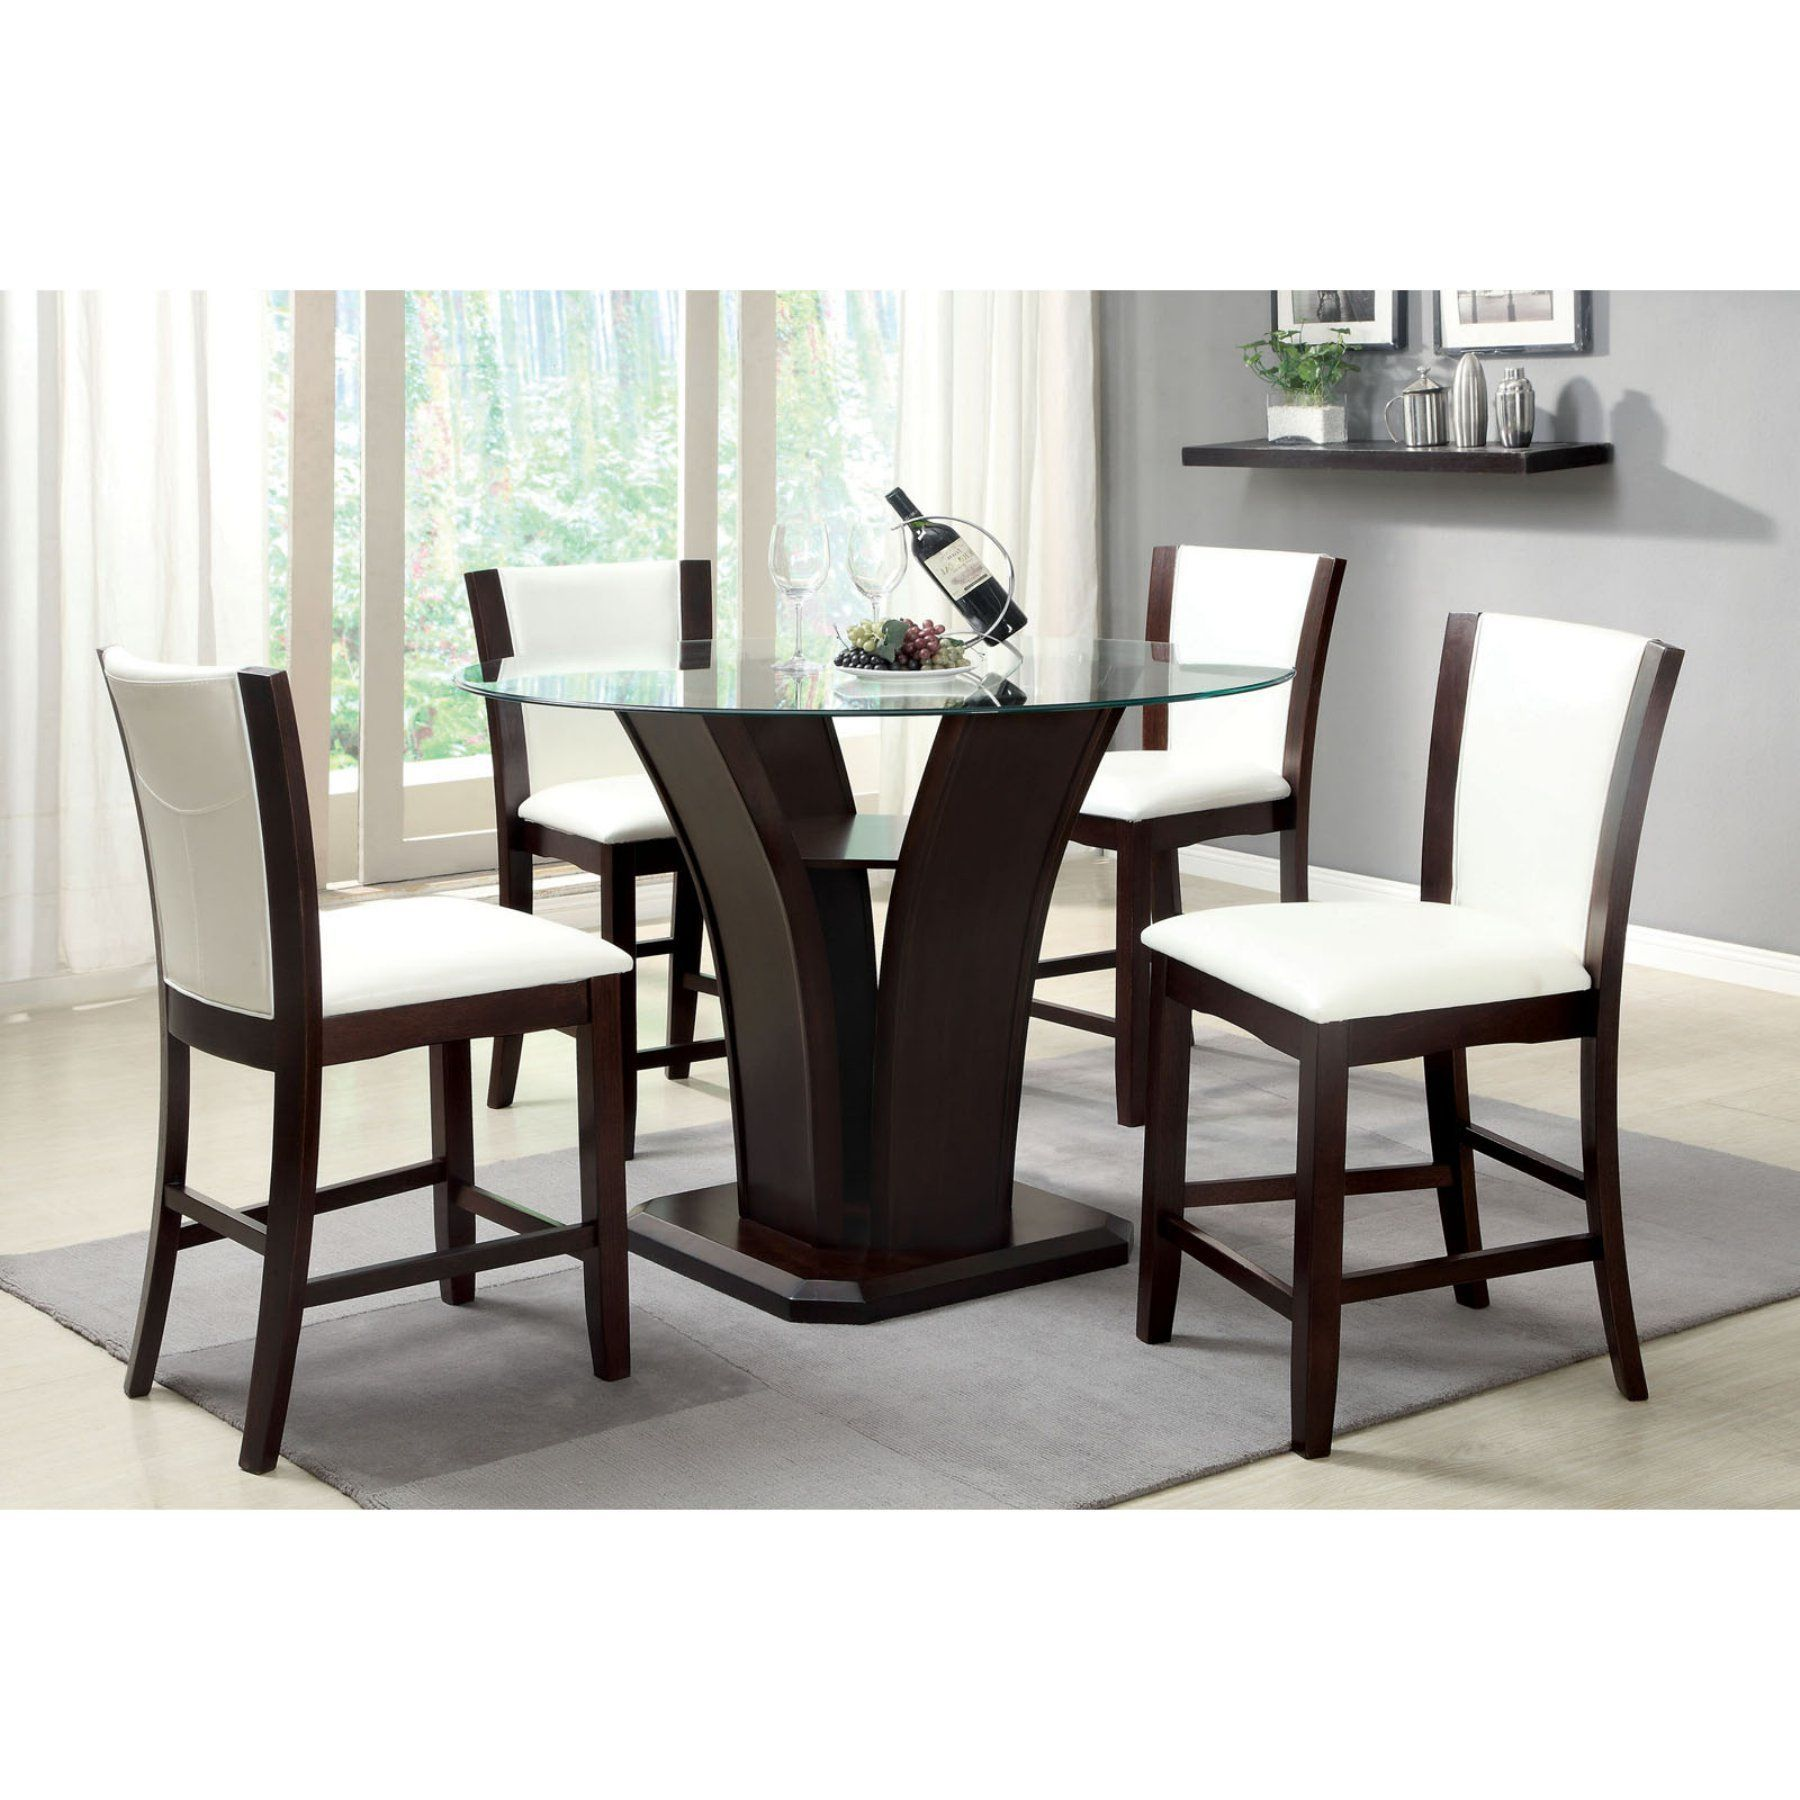 Furniture Of America White Lavelle 5 Piece Contemporary Counter Height Gltop Table Set Idf